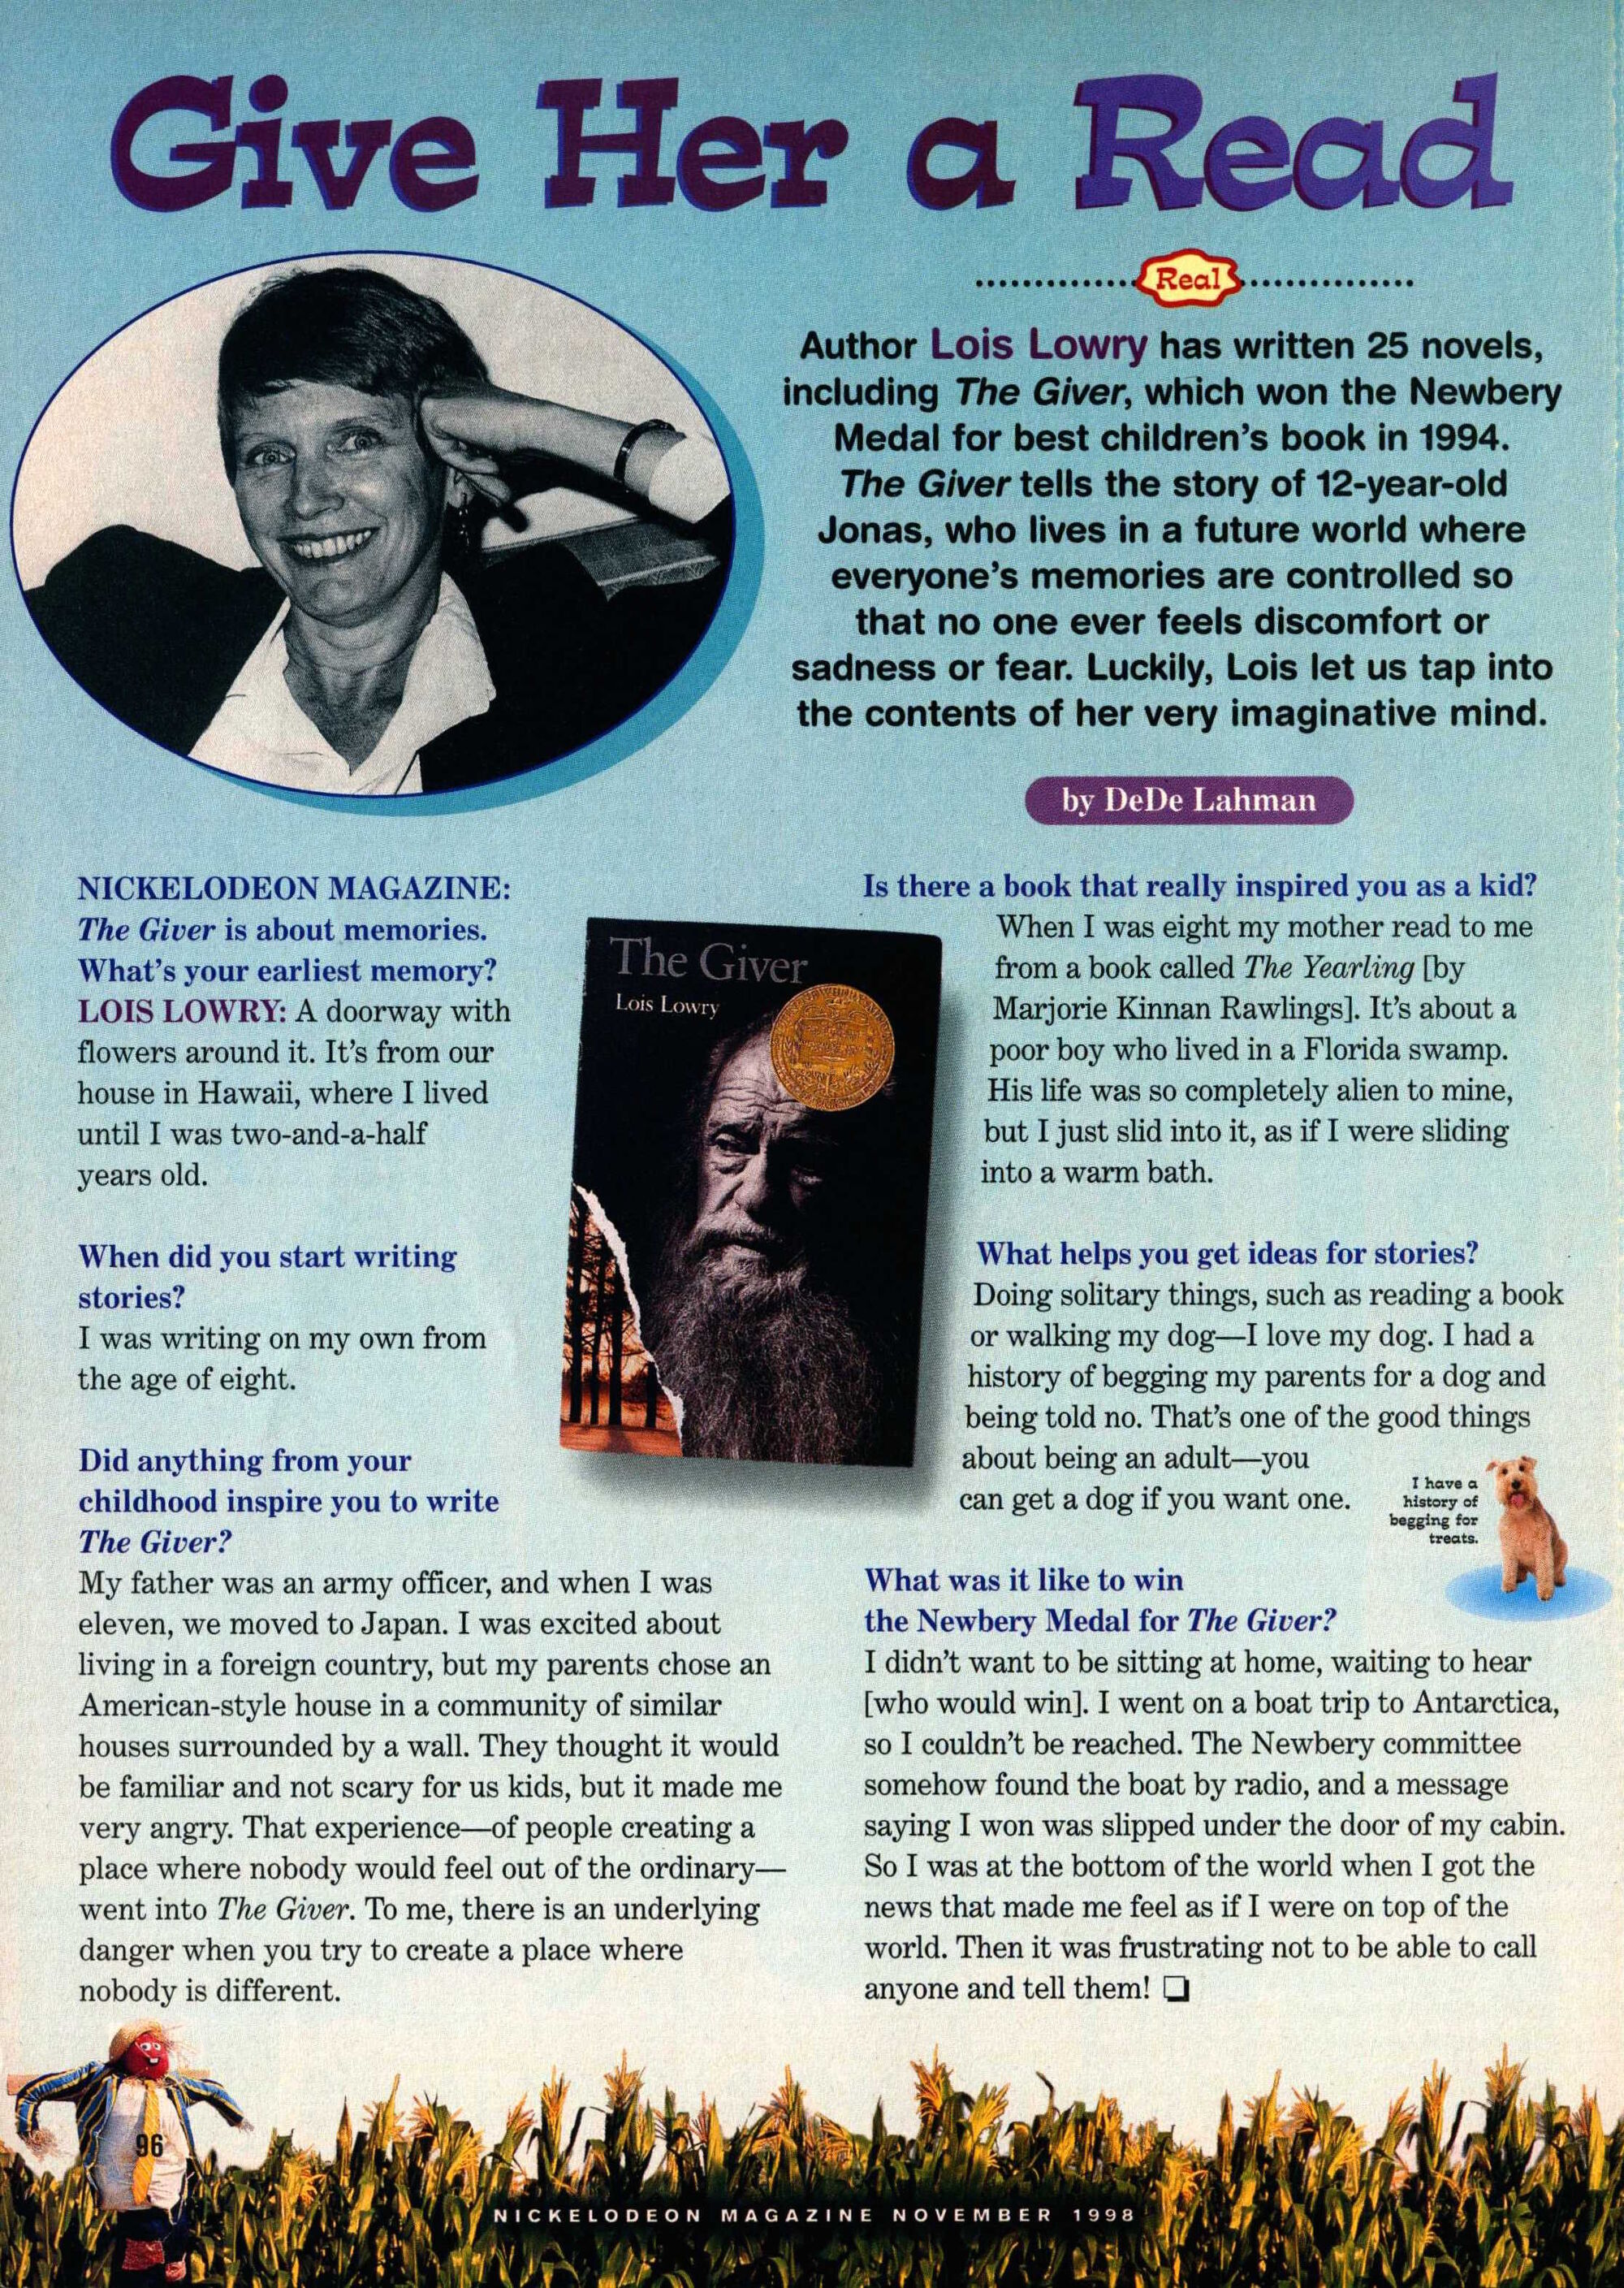 image nickelodeon magazine lois lowry the giver image nickelodeon magazine 1998 lois lowry the giver interview jpg the giver wiki fandom powered by wikia